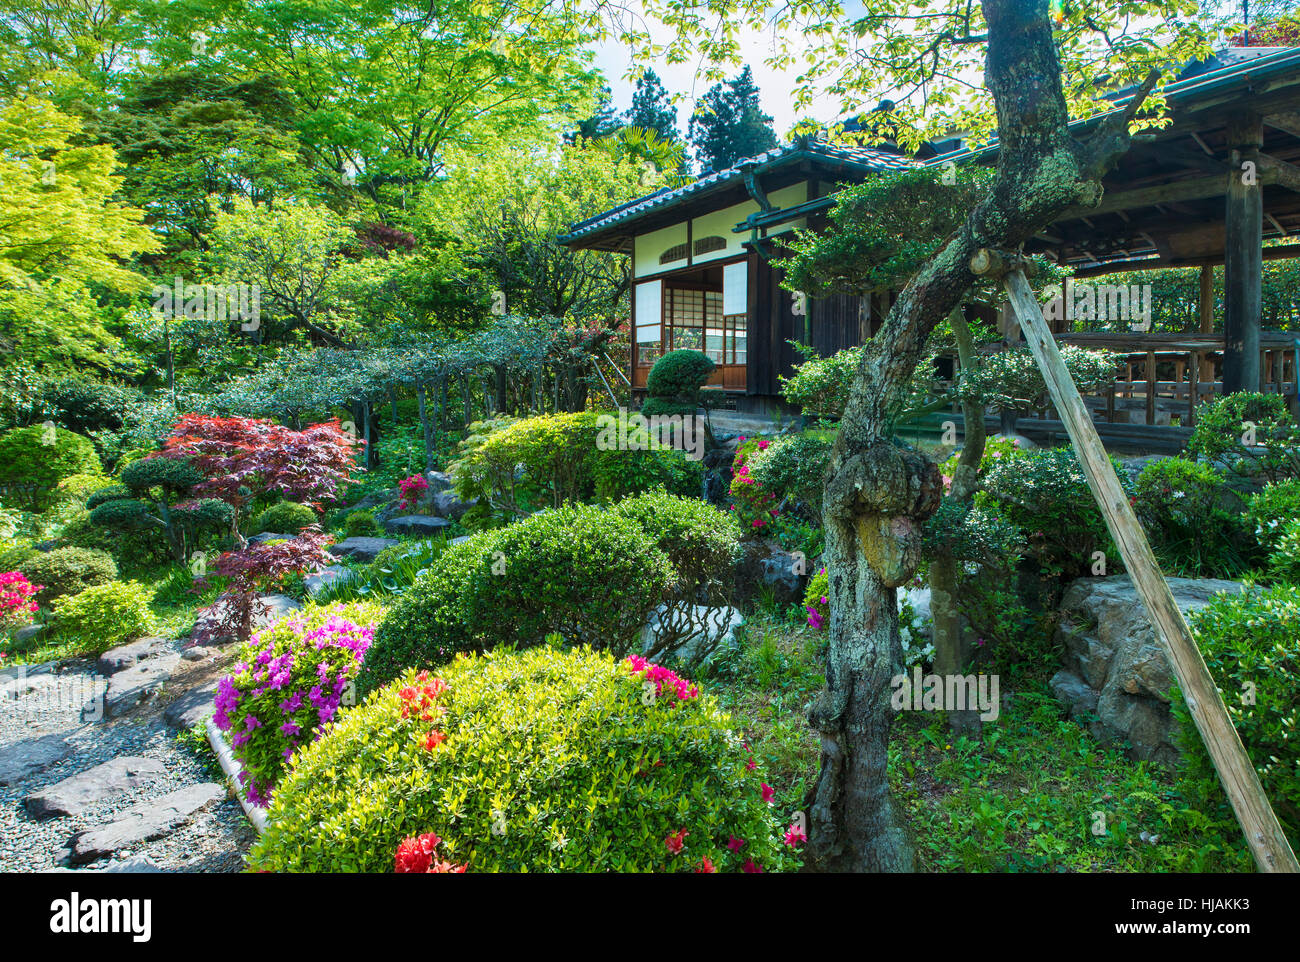 A traditional Japanese tea garden and house, chashitsu, near Tokyo in Japan - Stock Image